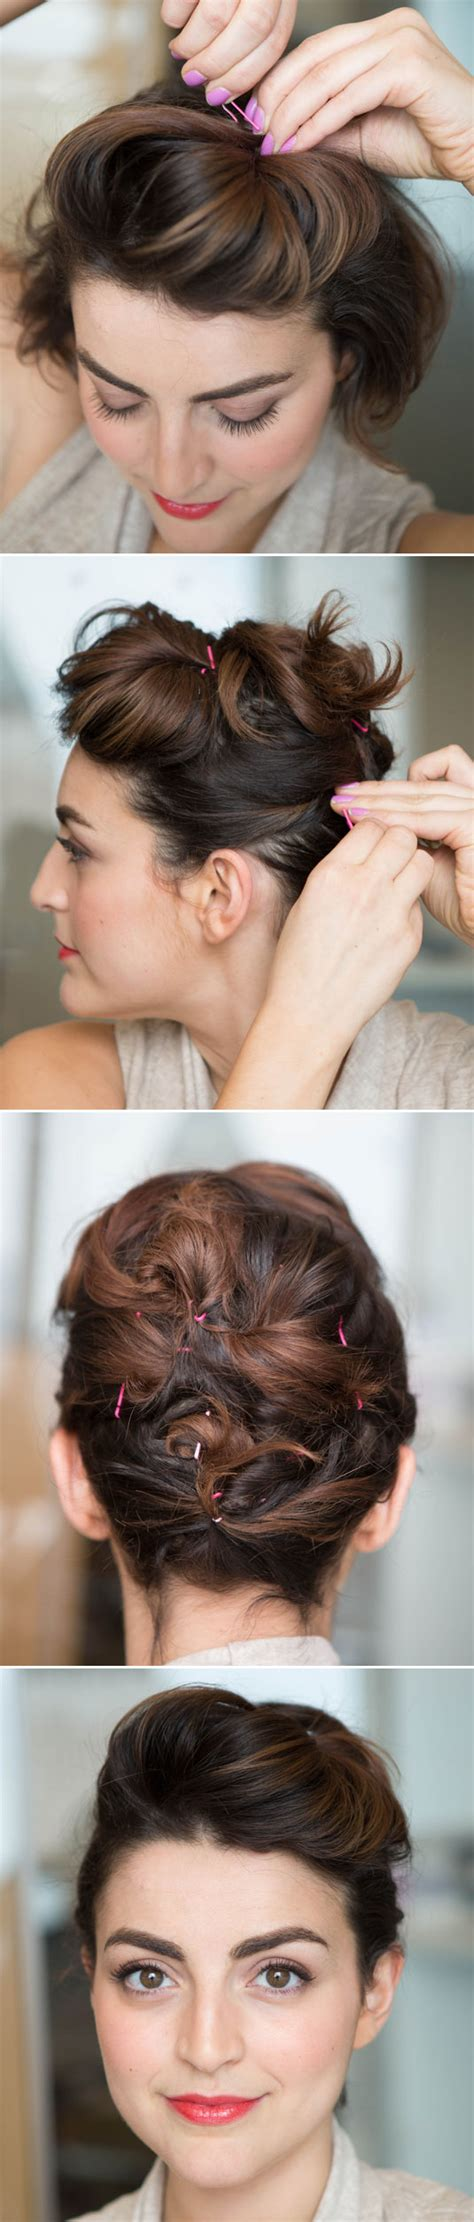 15 Best Hairstyles For Short Hair Beauty Fashion